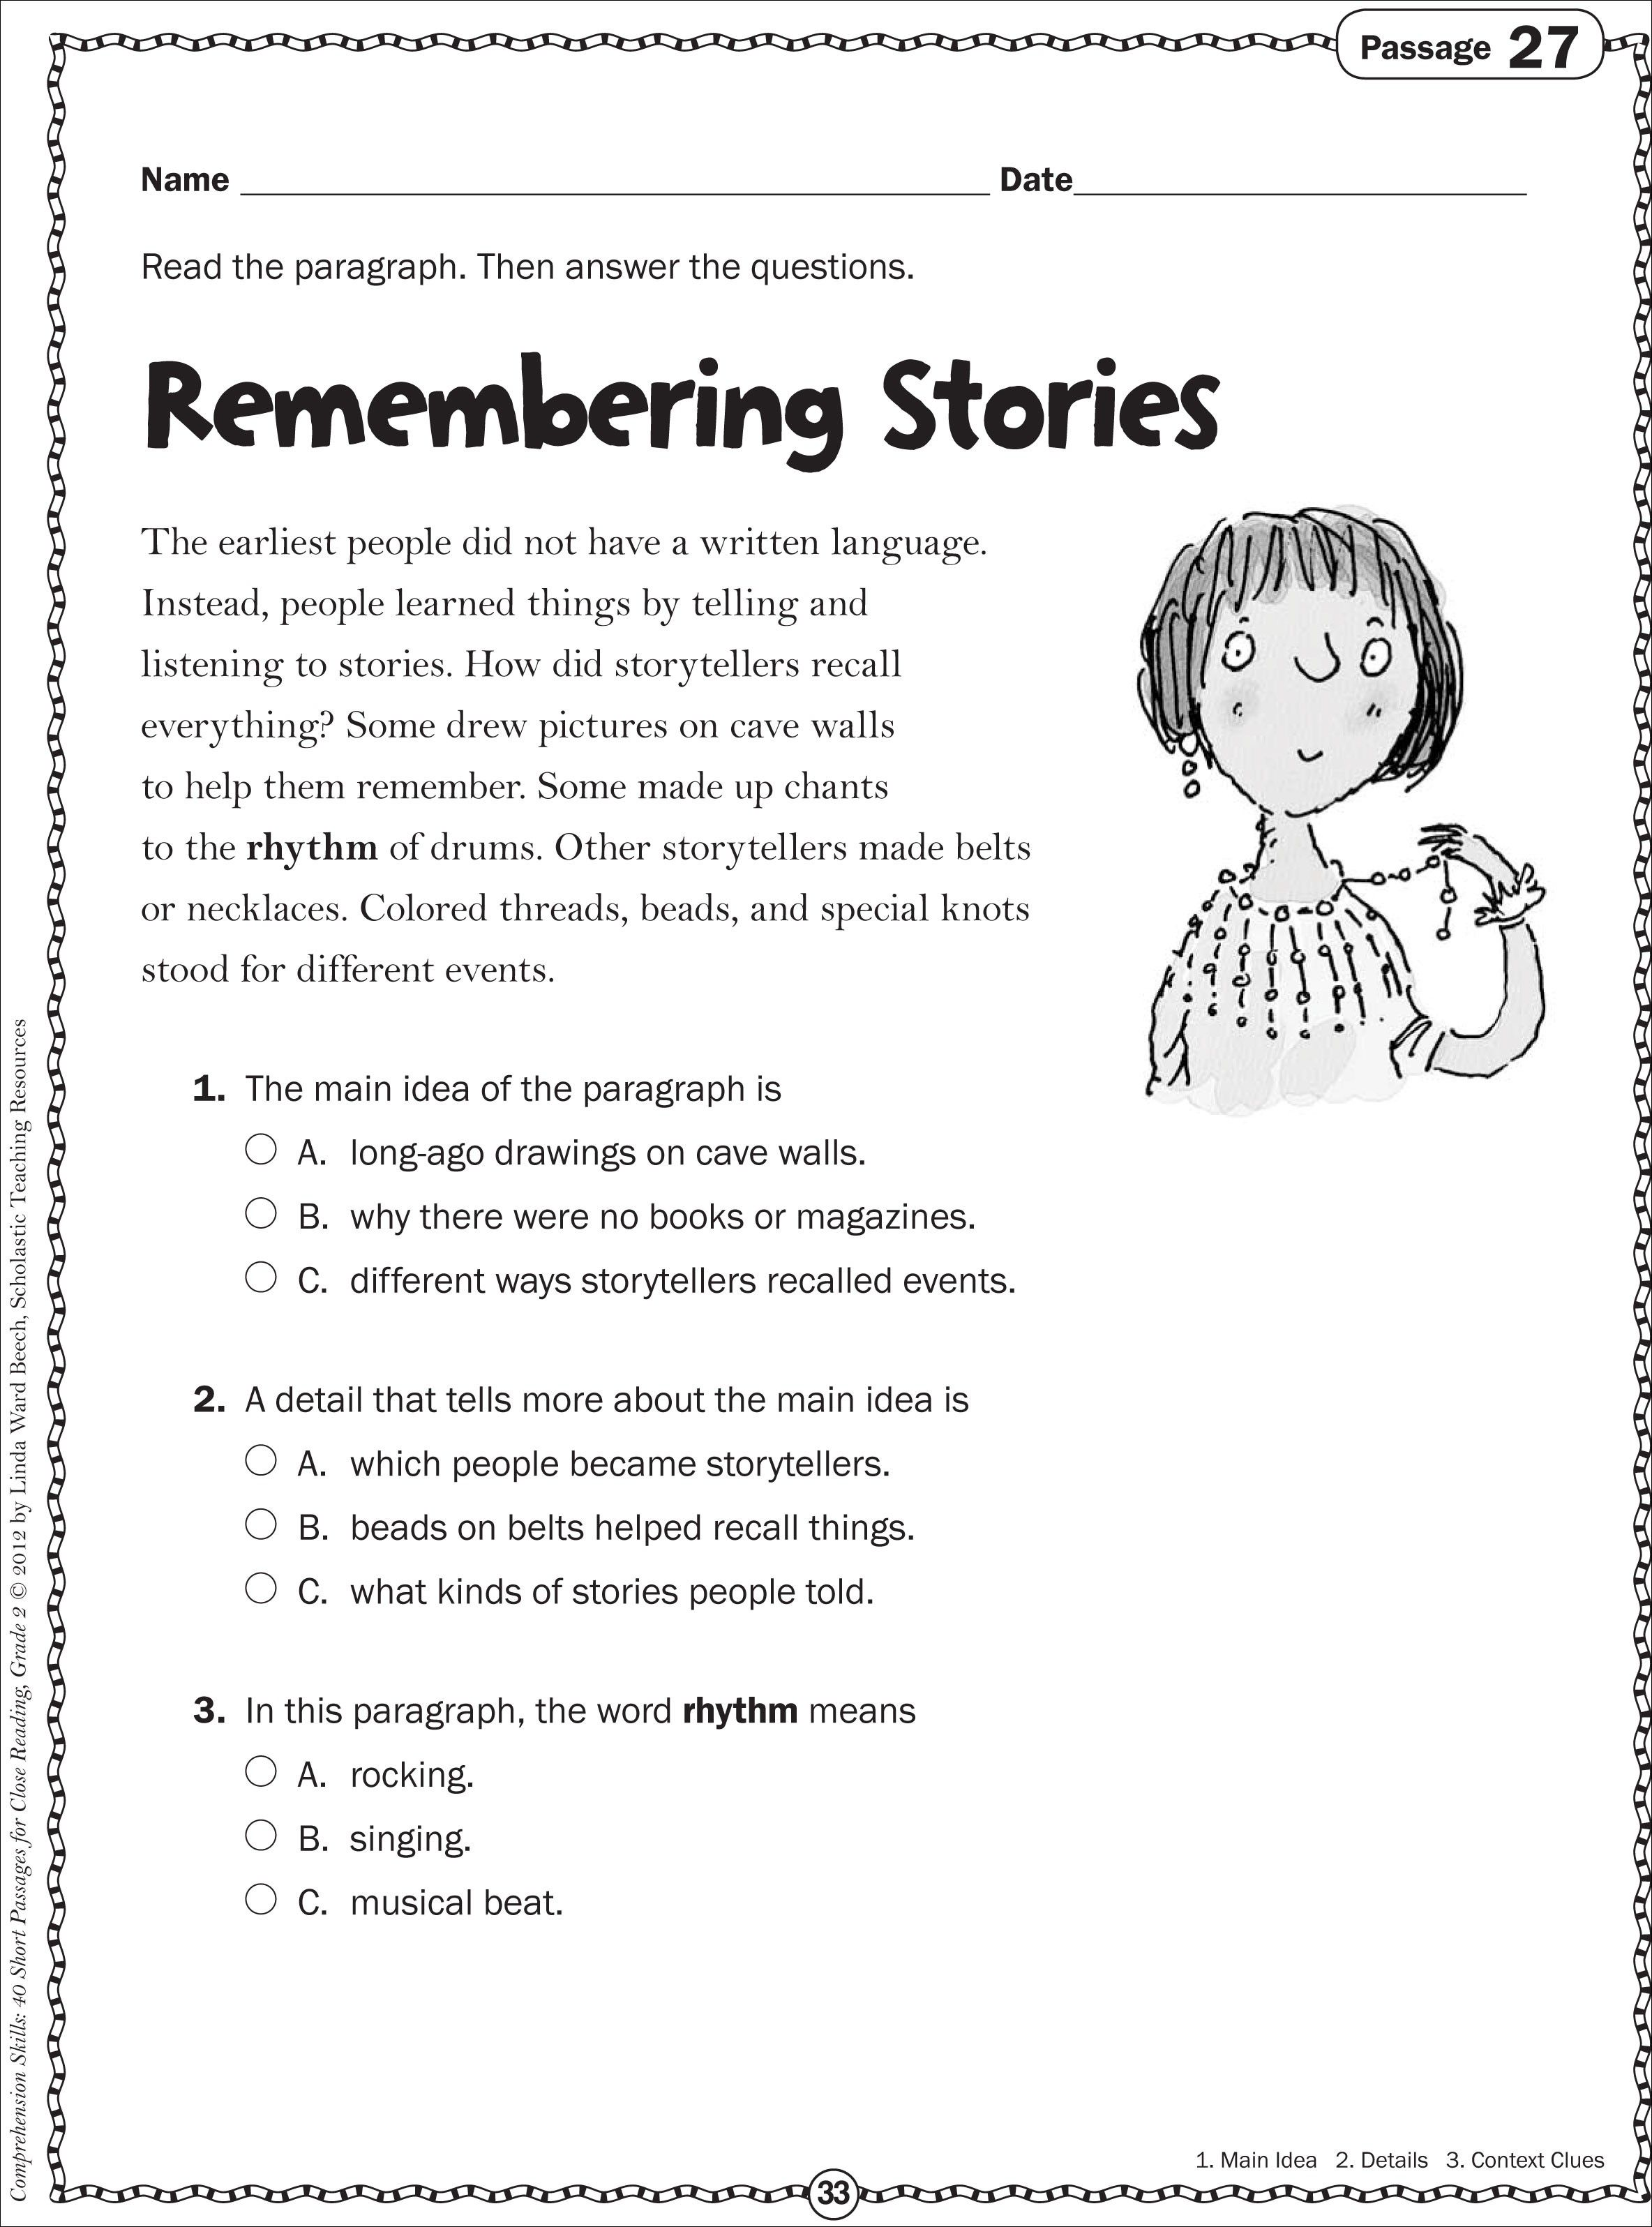 worksheet Reading Comprehension 5th Grade Worksheets grade 2 reading passages memarchoapraga school pinterest memarchoapraga